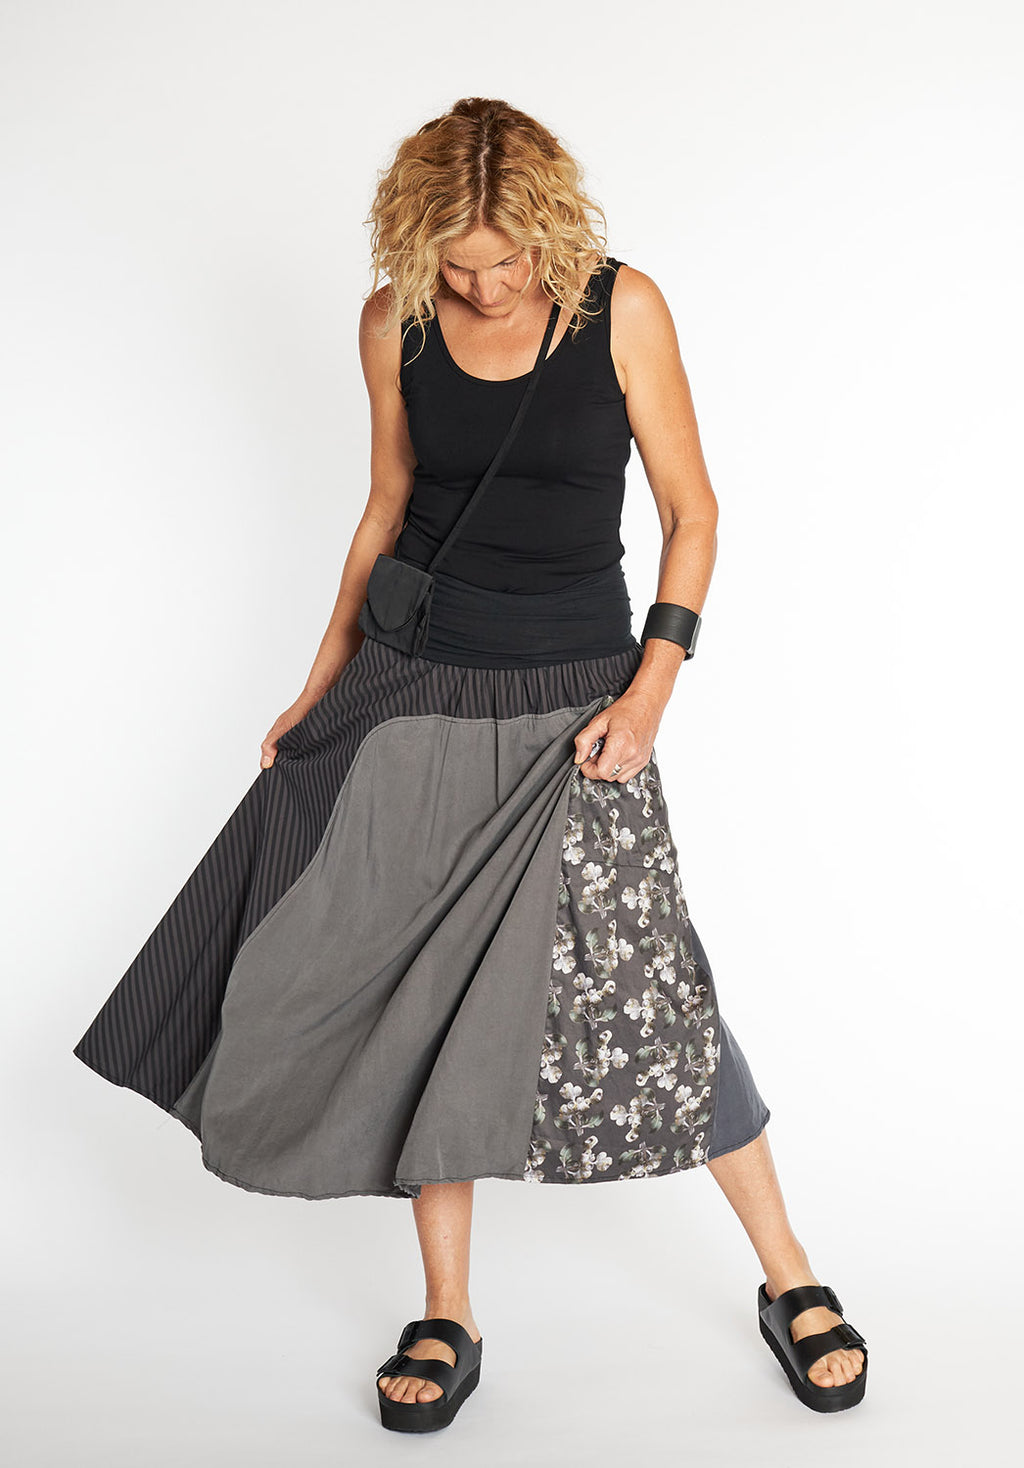 australian fashion designer, sustainable fashion online, shop australian fashion designer, 100% made in australia, tencel skirts online, cotton skirts,